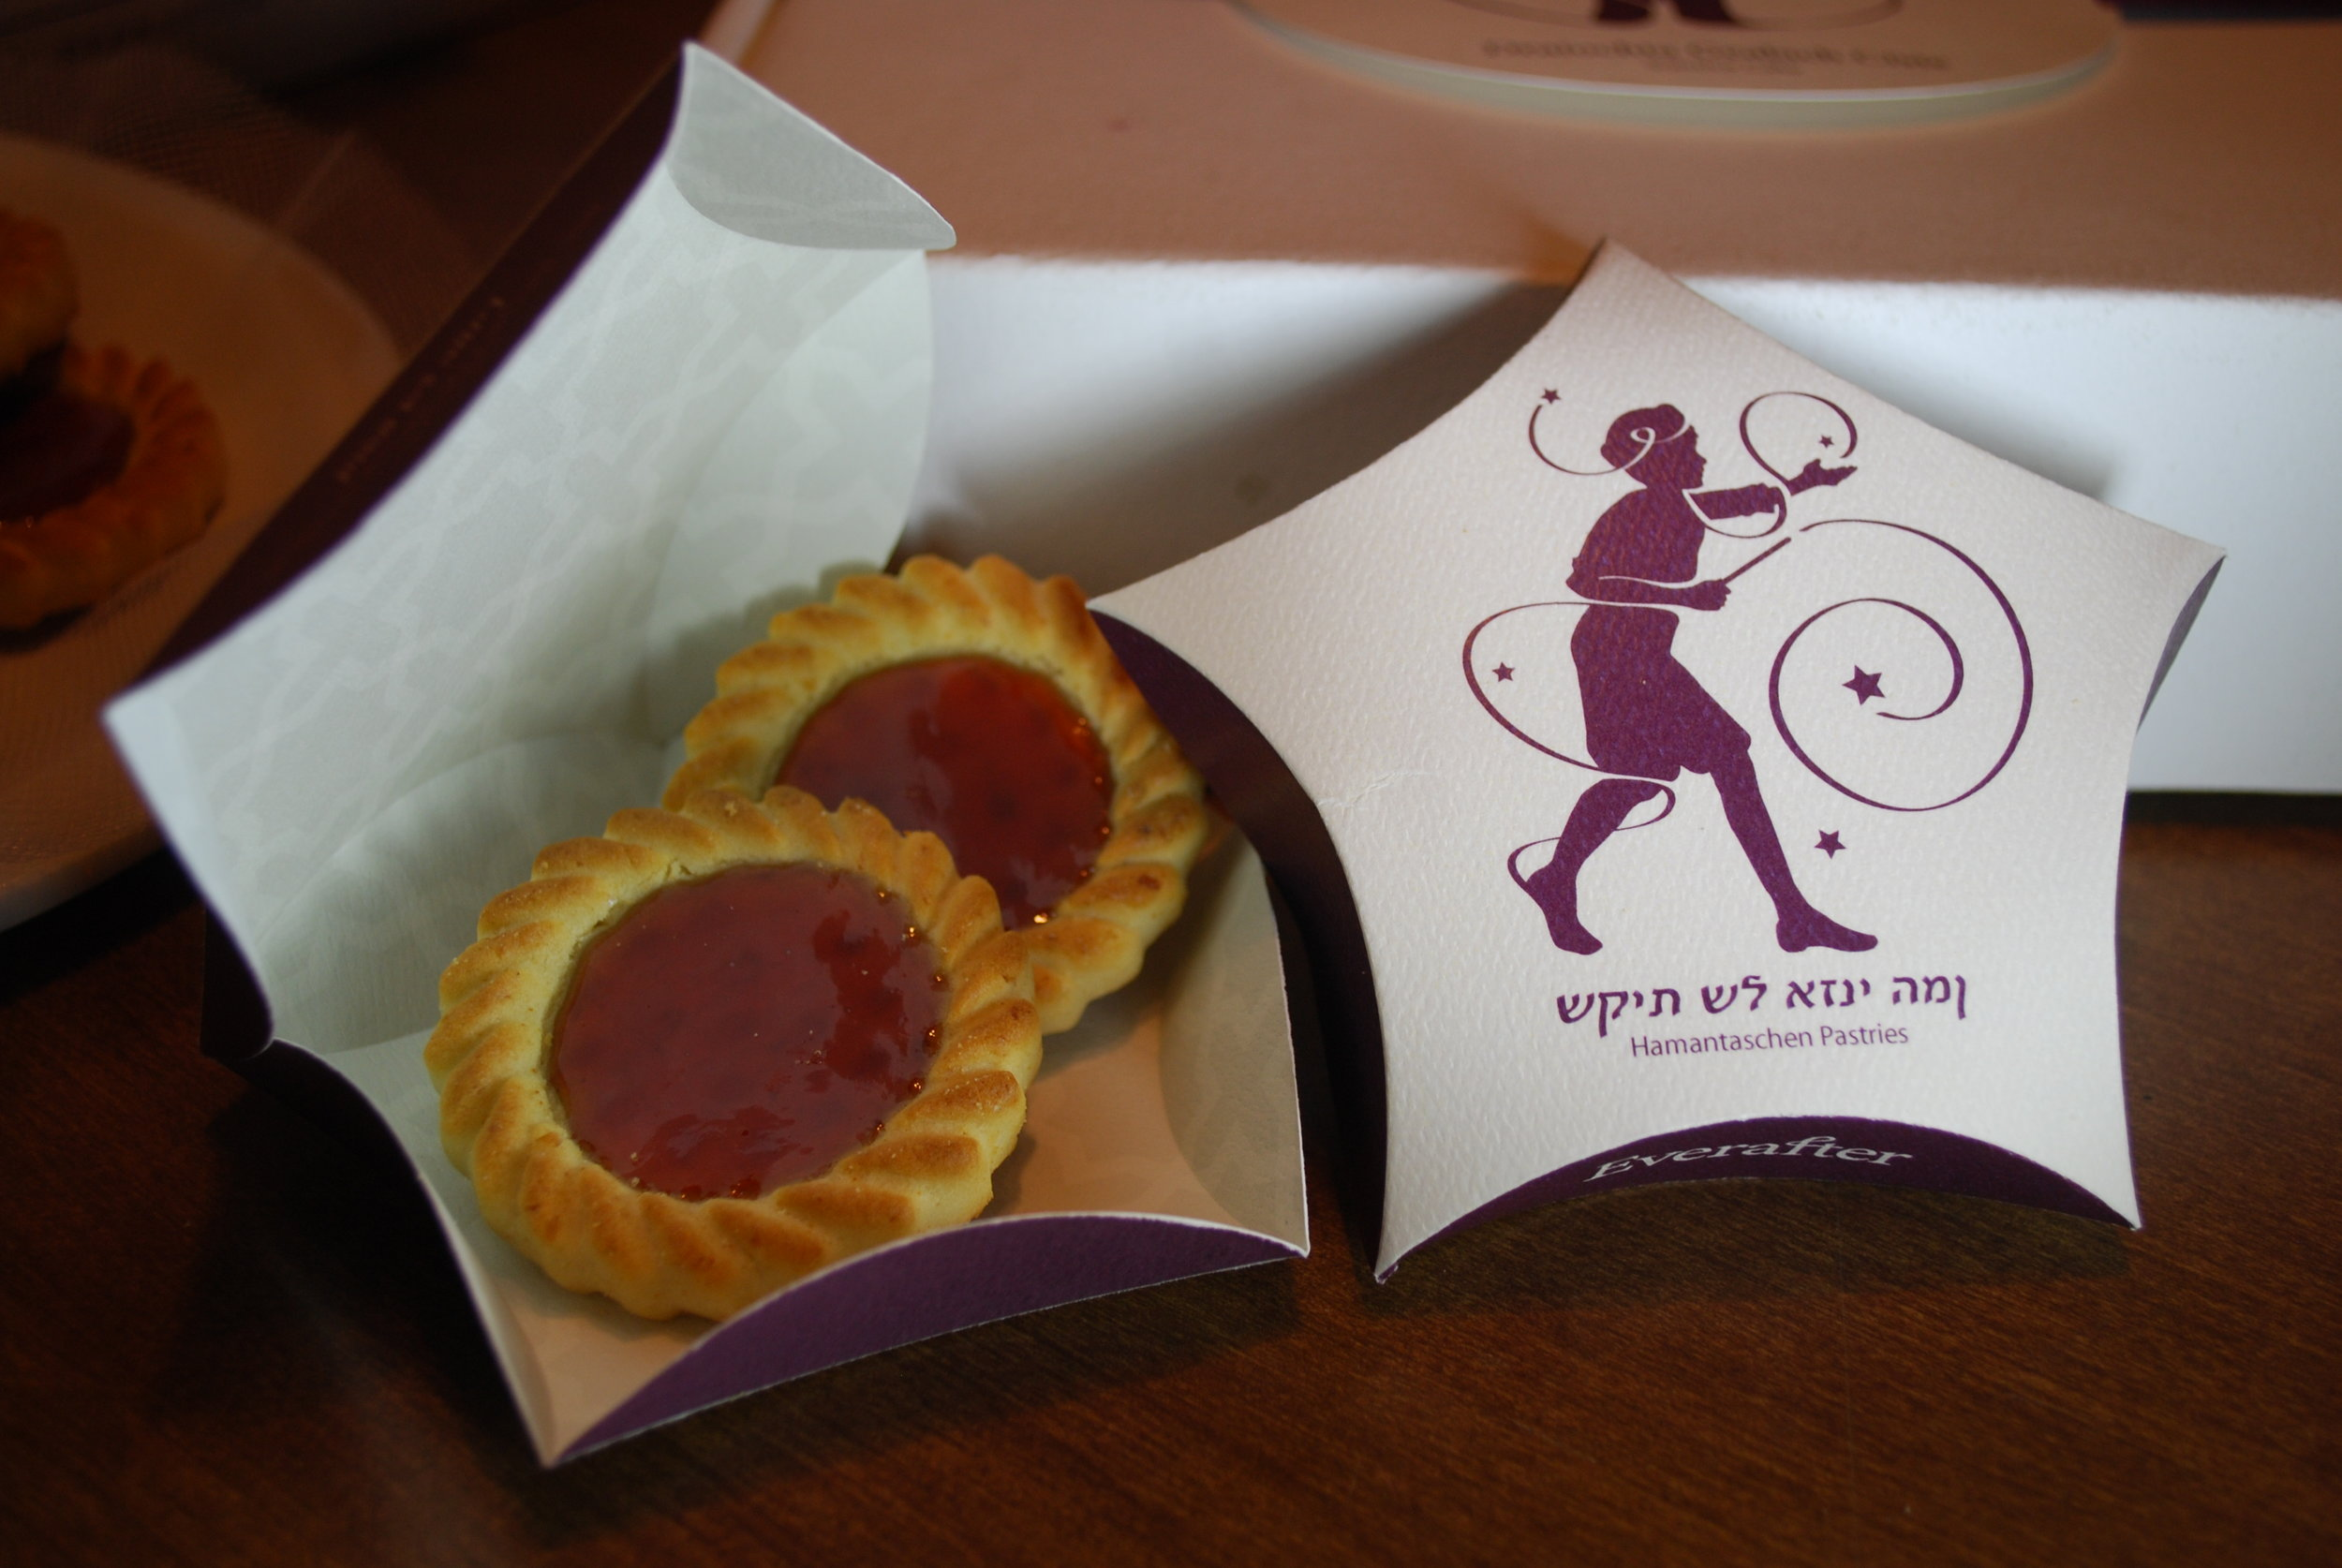 The Sorcerer's Apprentice Hamantaschen Pastries and their 5-pointed start puff-box.